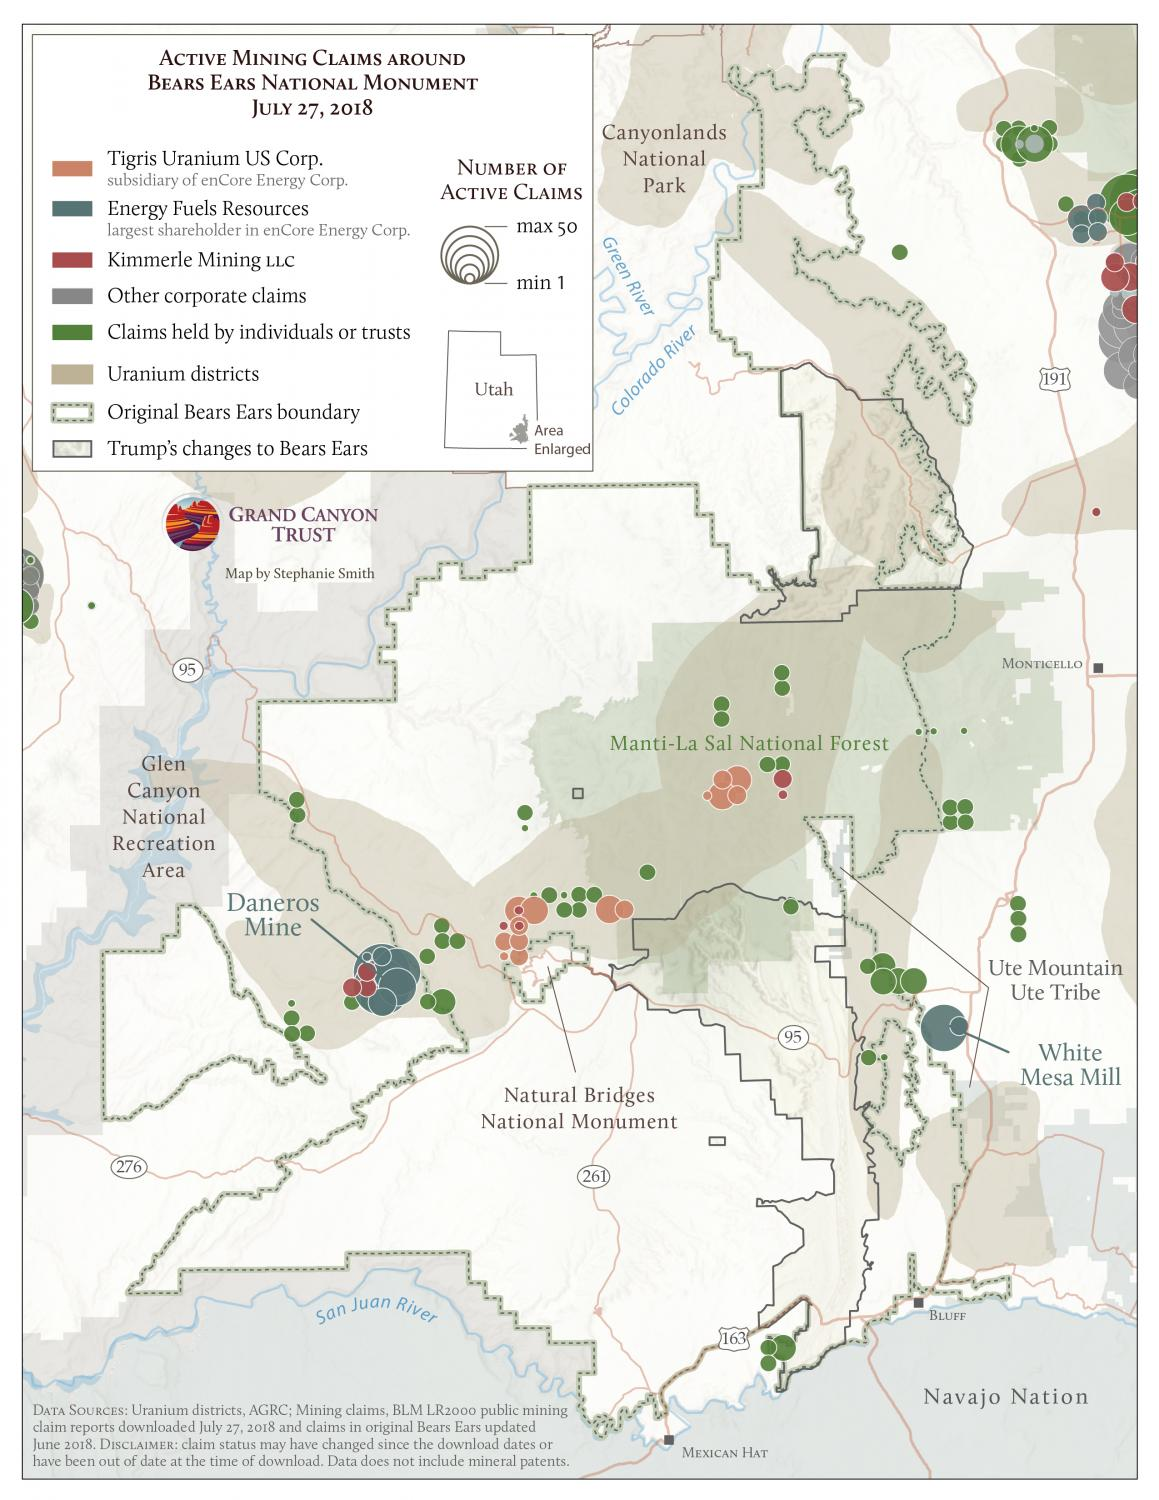 Active mining claims around bears ears